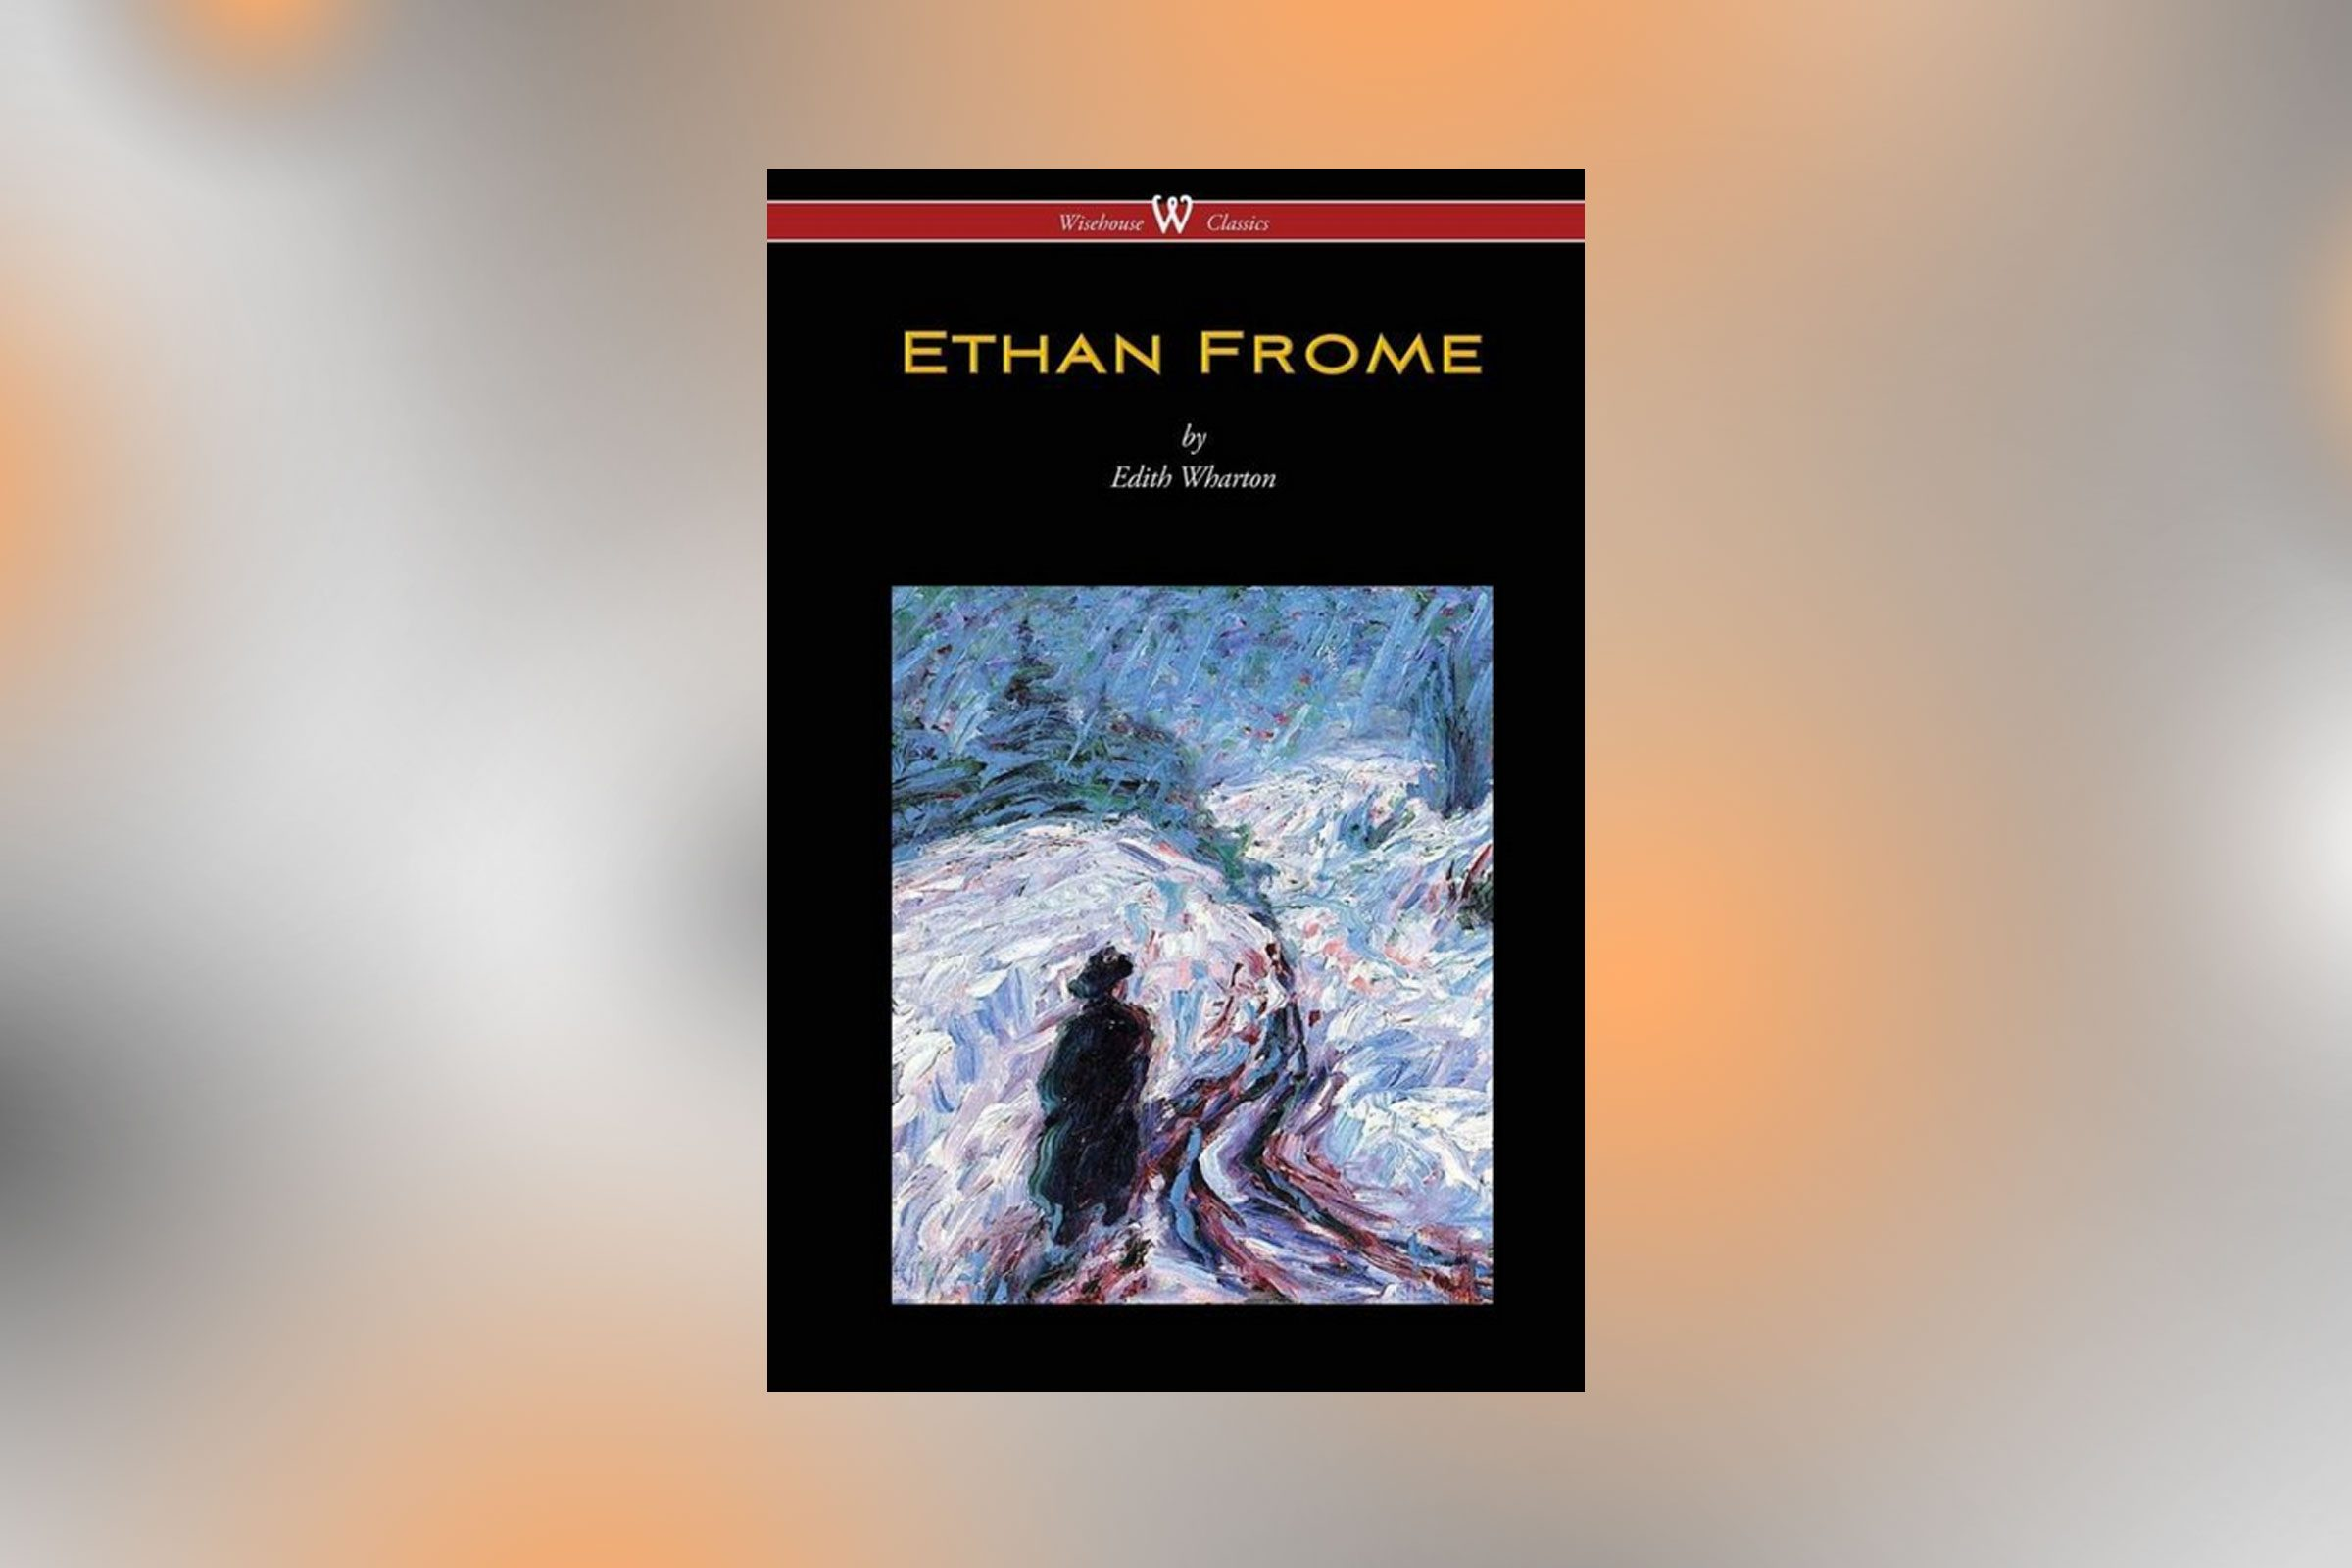 an essay on ethan frome by edith wharton Ethan frome analysis in edith wharton's novel ethan frome, setting is an important element the setting greatly influences the characters, transportation, and activities the setting takes place in a small town called starkfield.